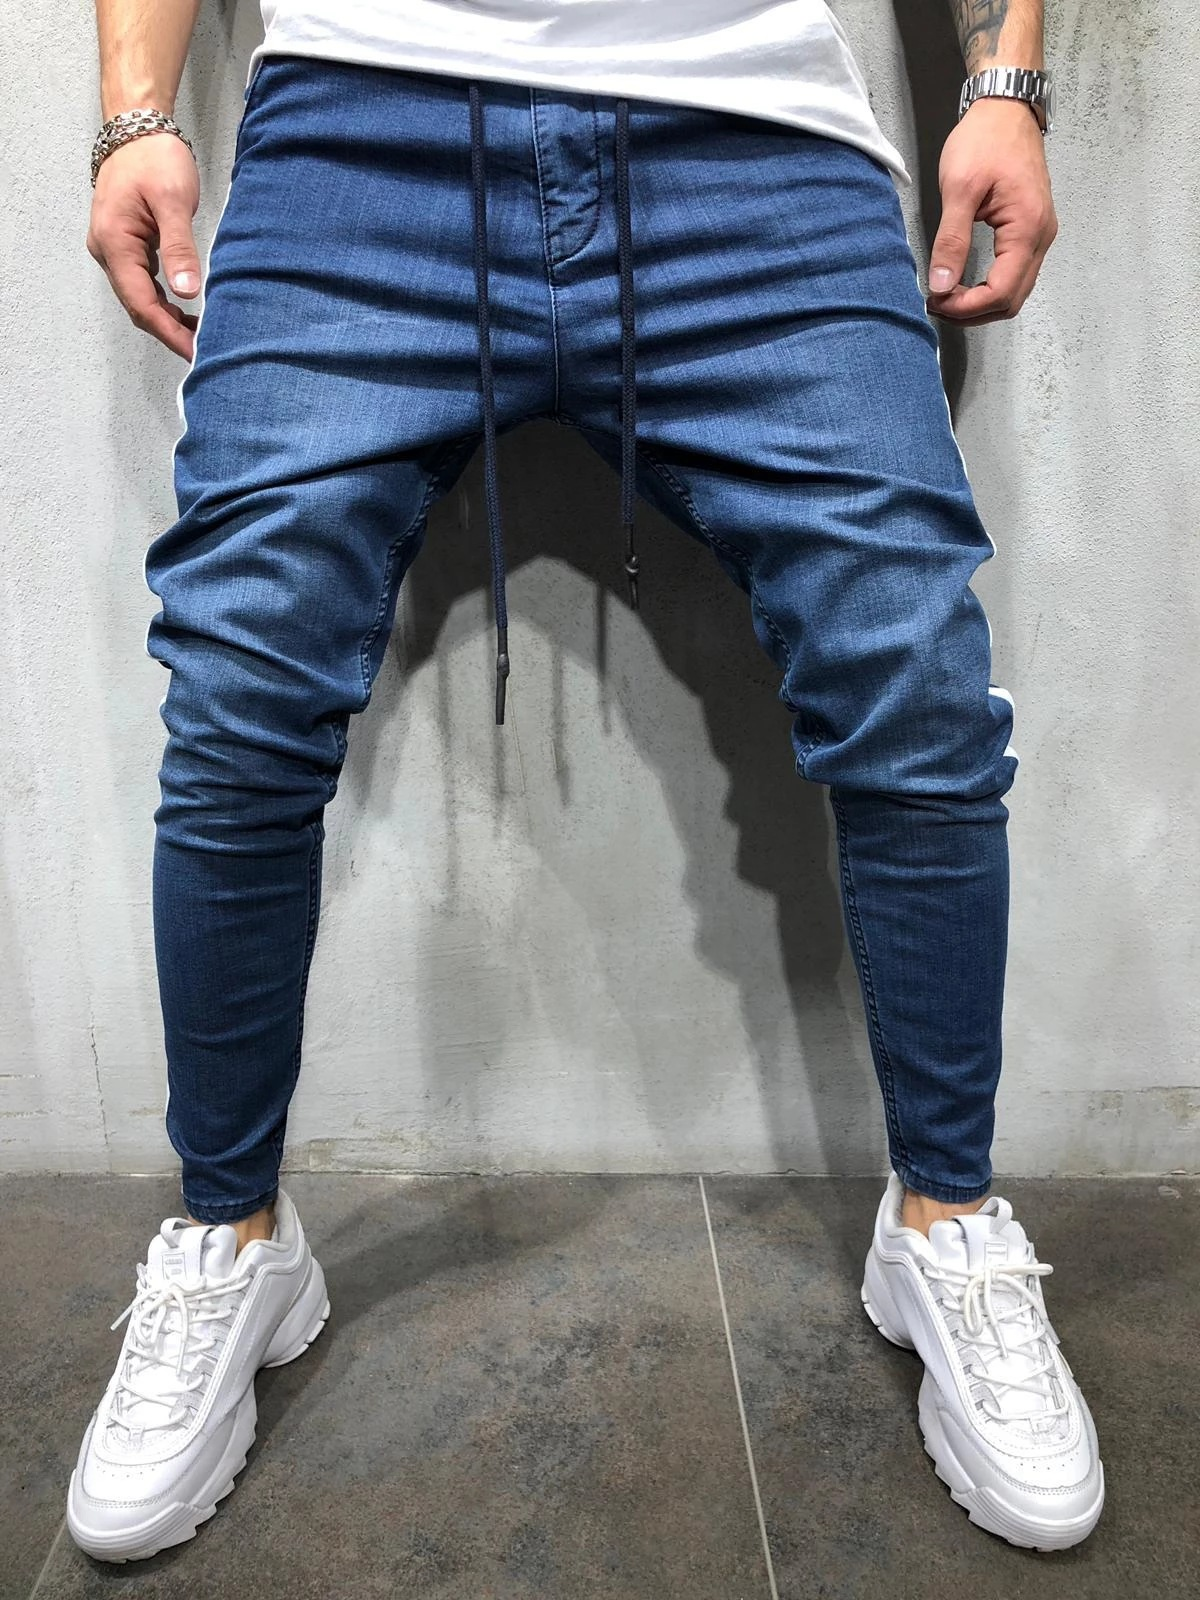 2020 Black Blue Colors M-xxxl Sizes Men's Jeans Fabric Leisure Sports Individual Side Sewing Strip Bottom Skinny Jeans For Mens